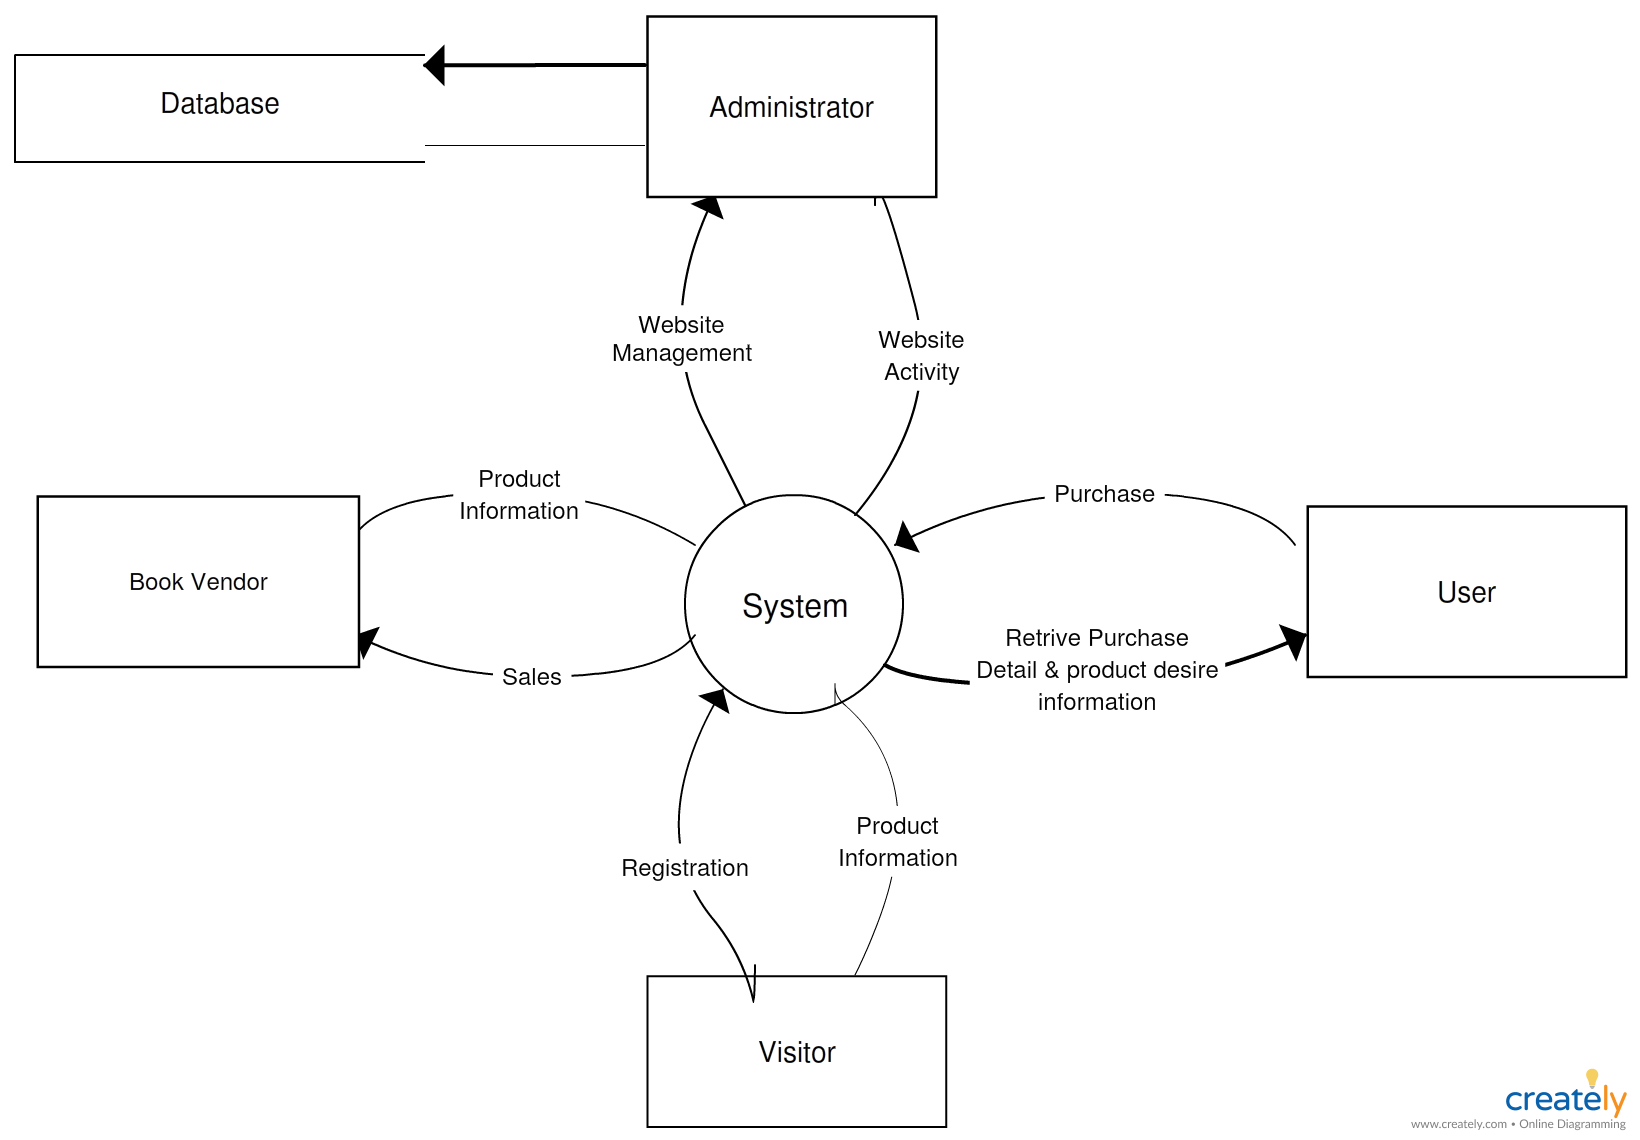 What is data flow diagram best wild flowers wild flowers teach ict a level computing ocr slc dfd data flow diagram data flow diagrams data flow diagram example and template dfd example data flow diagram everything ccuart Choice Image